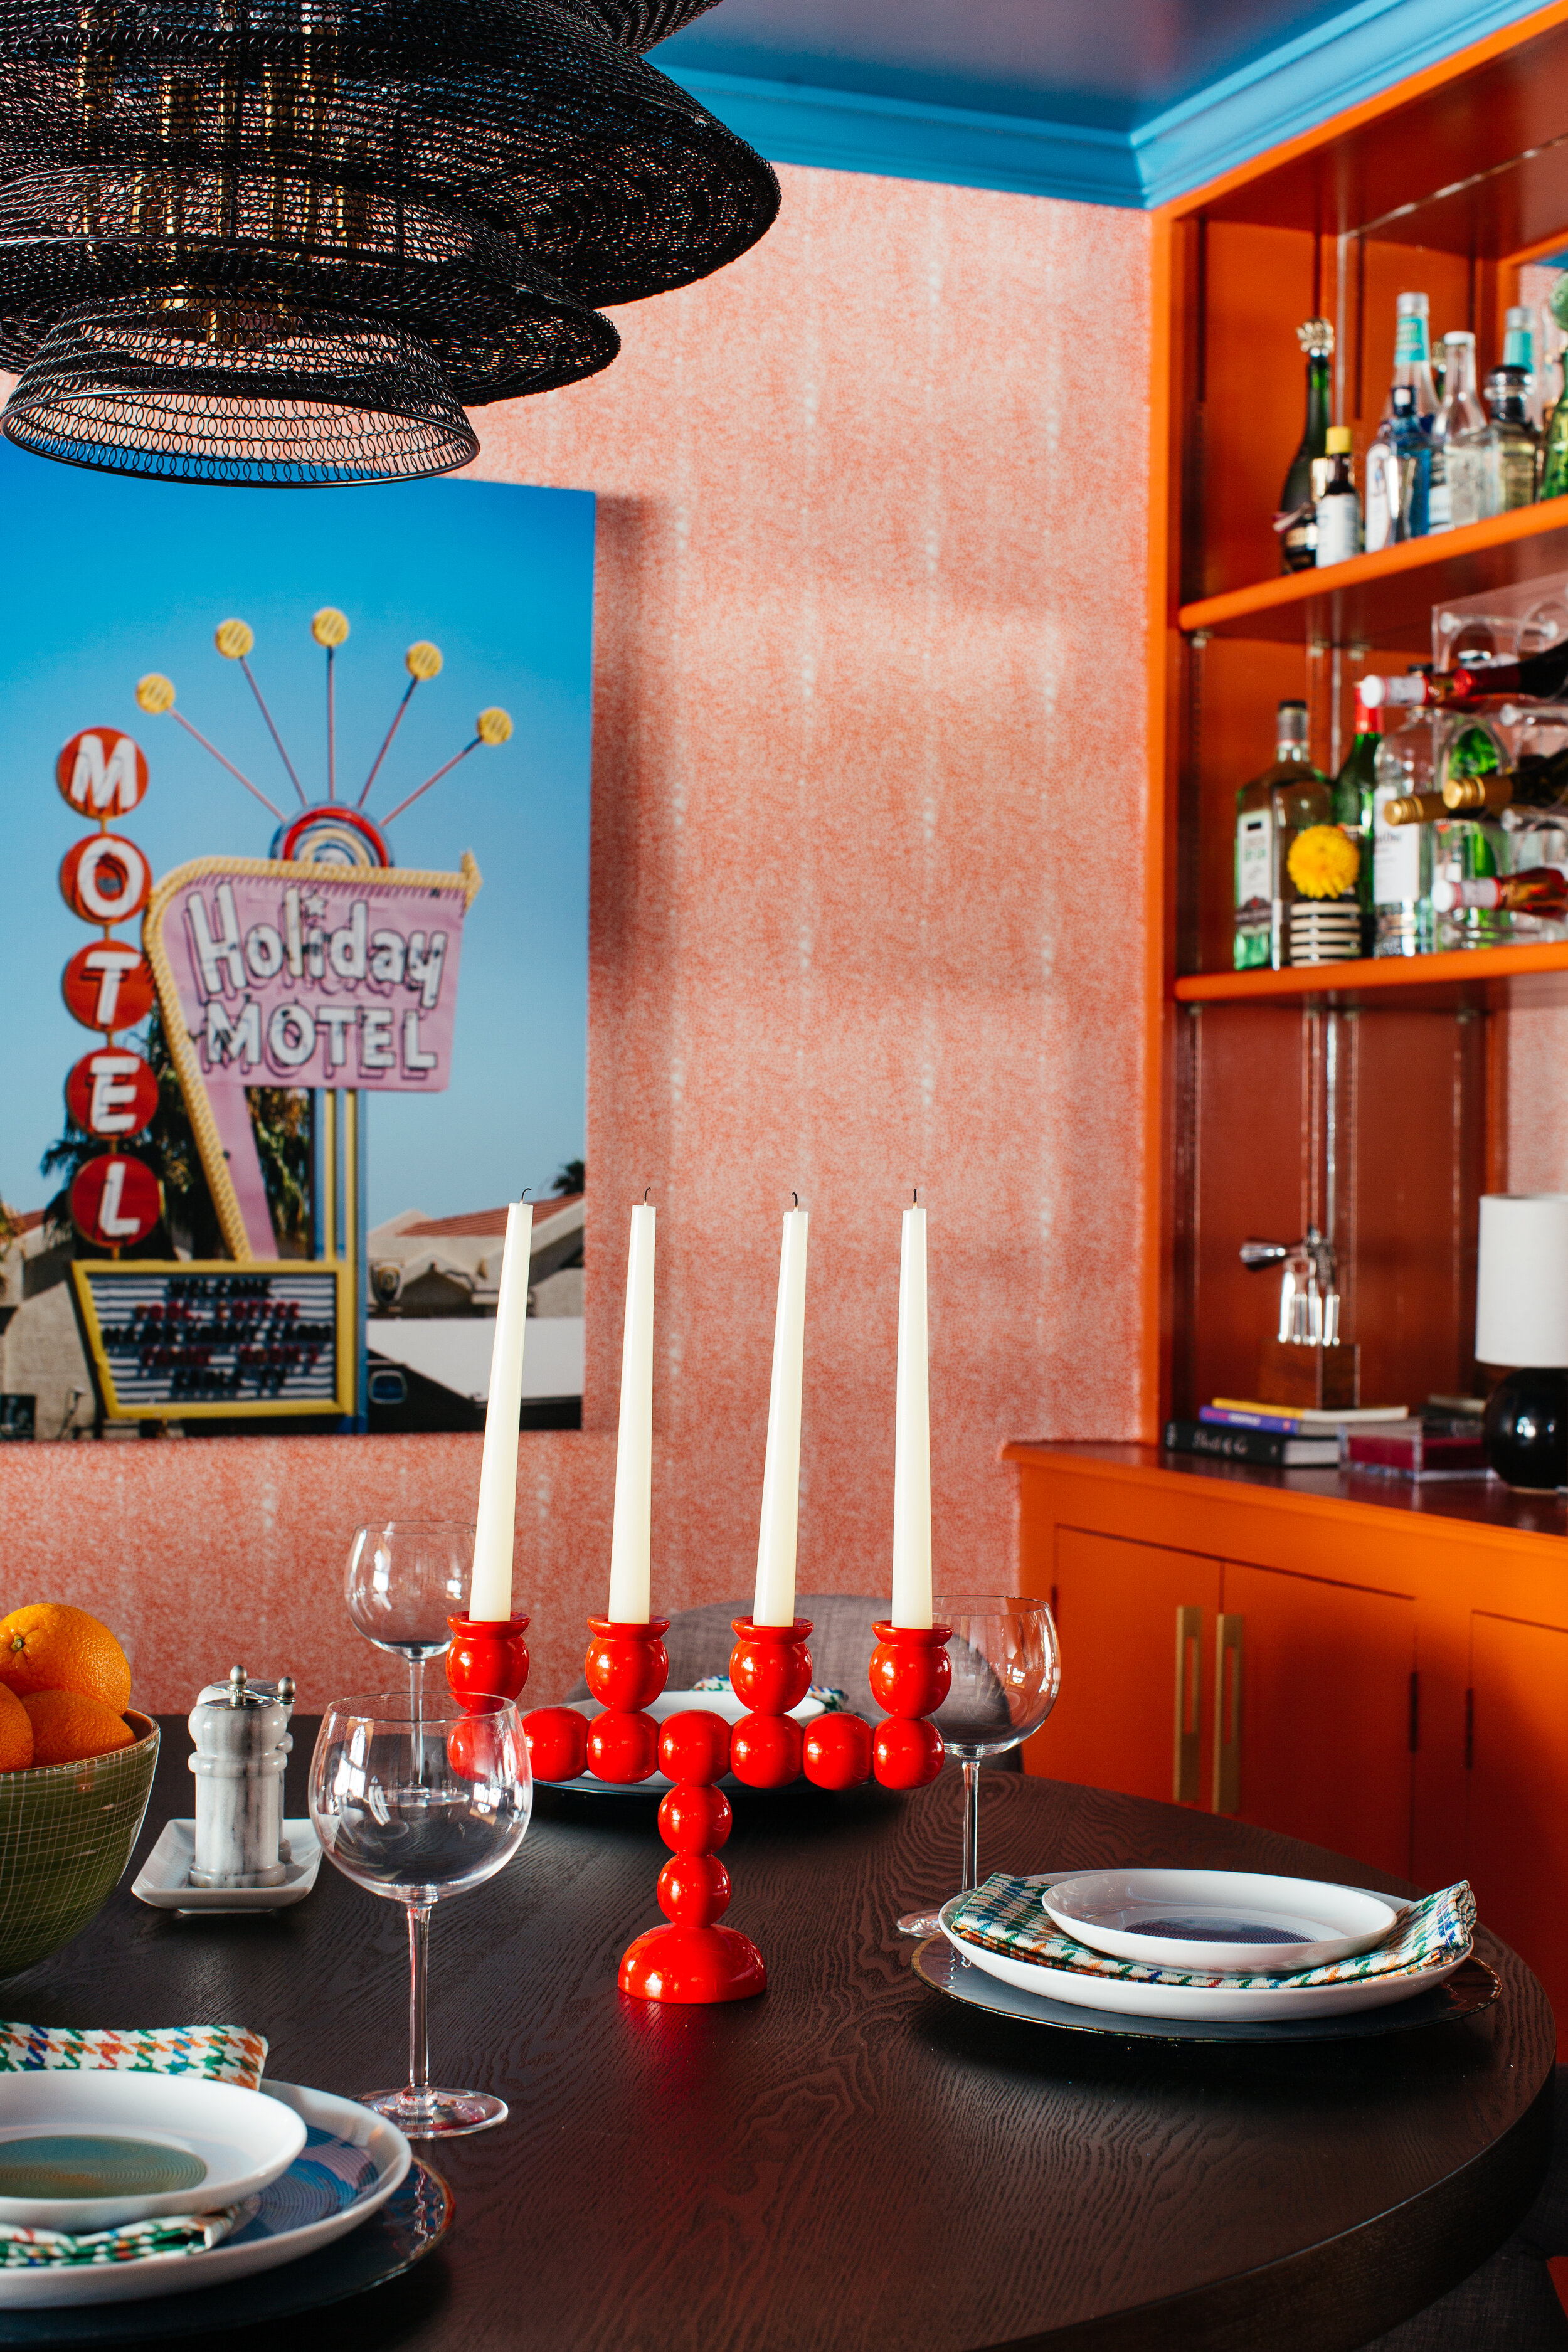 ORC design by TheRathProjectdining room table red swedish candelabra from Chairsihand motel art from chairish and minted.jpg